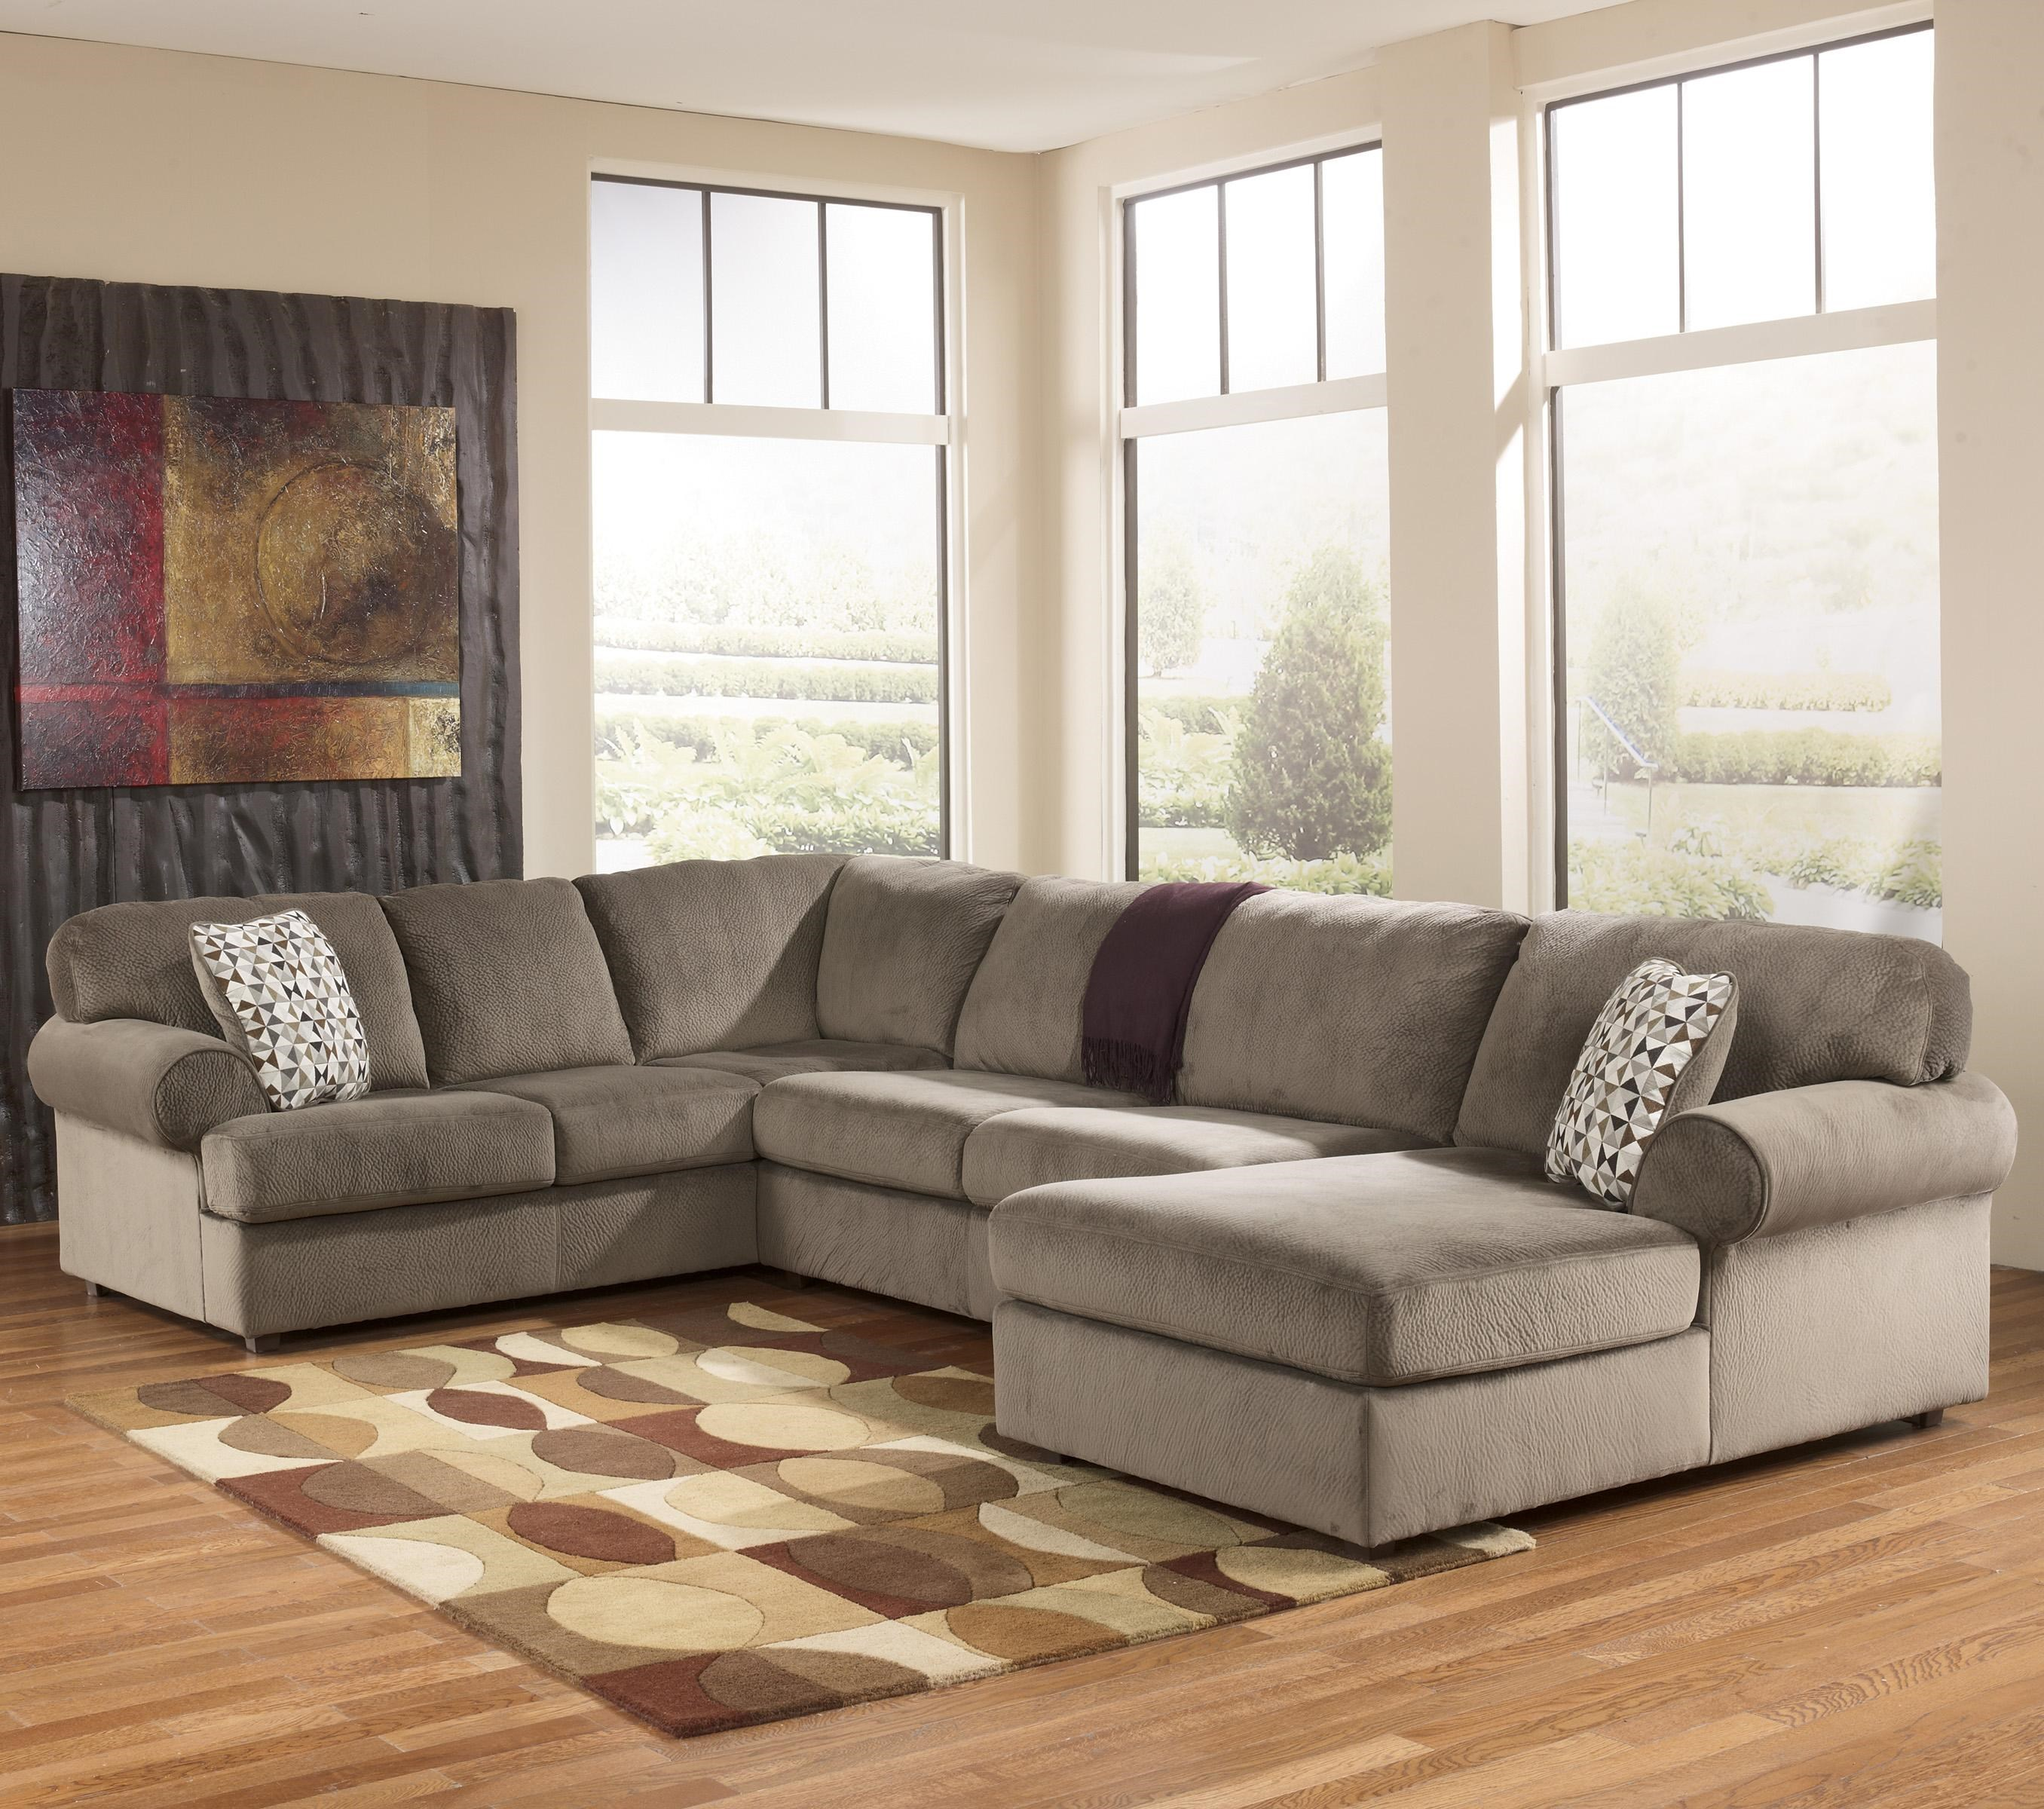 Delightful Signature Design By Ashley Jessa Place   Dune Casual Sectional Sofa With  Right Chaise